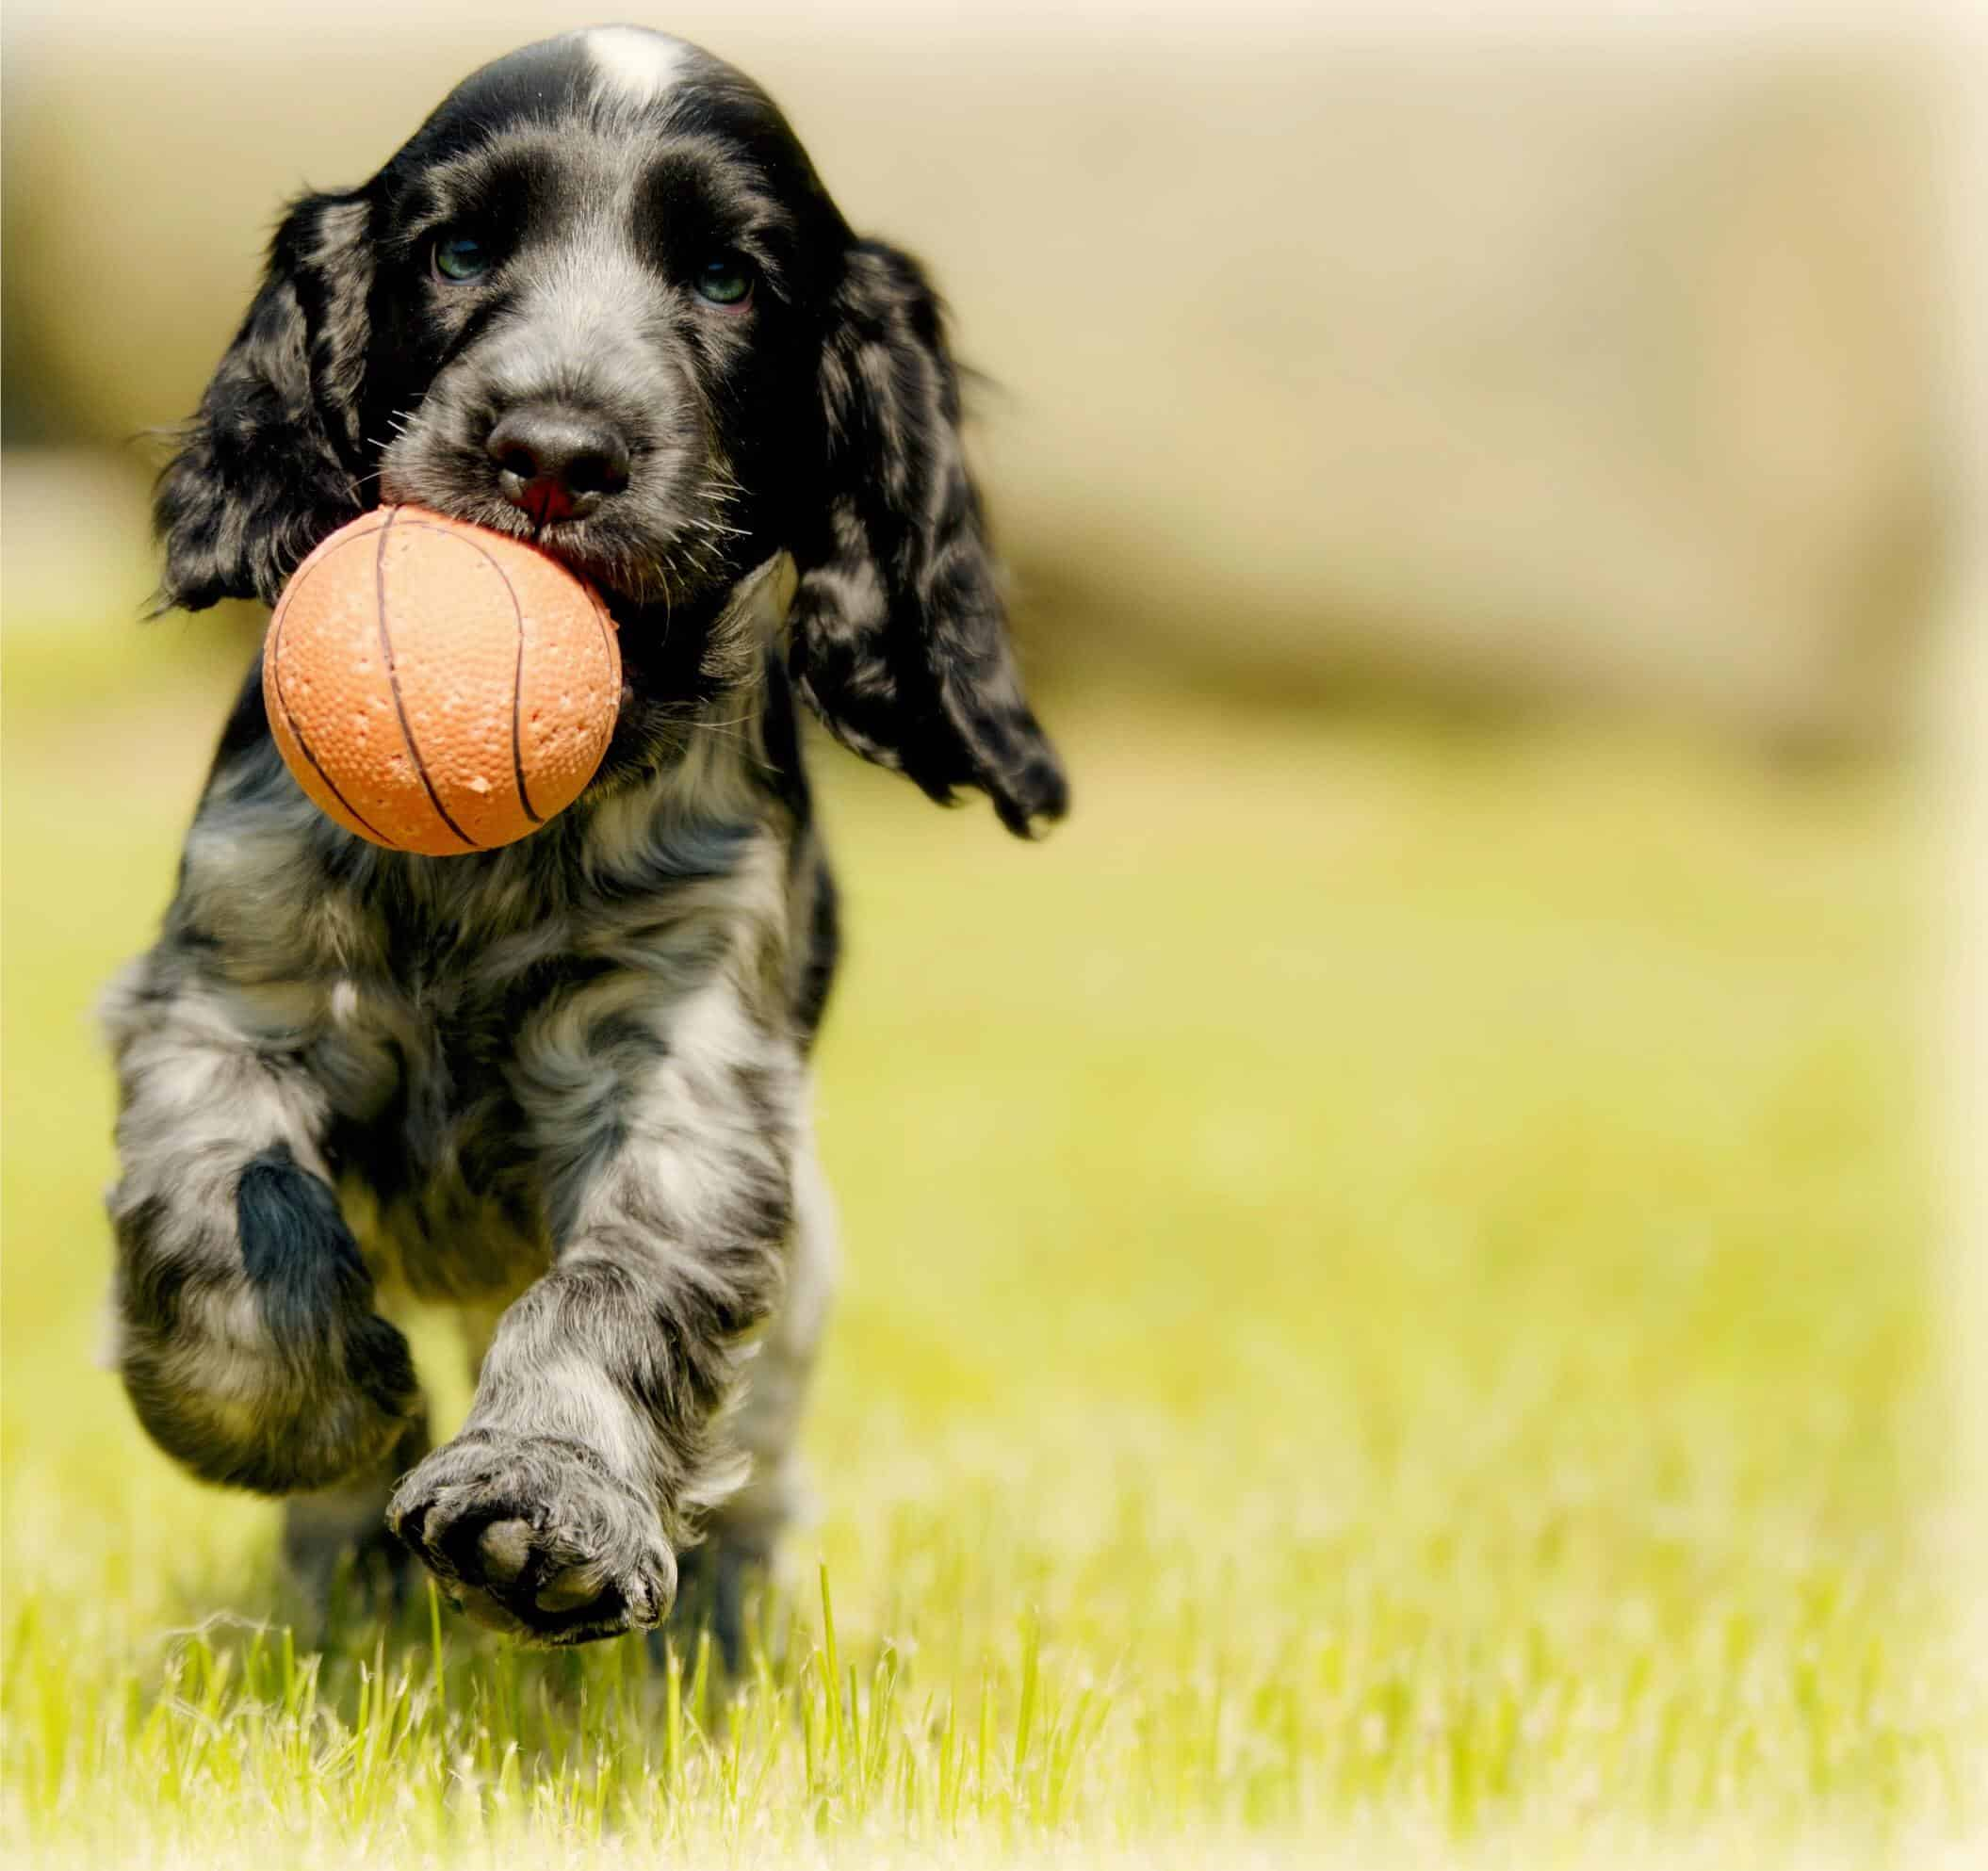 Spaniel Puppy running across grass holding an orange ball in mouth.